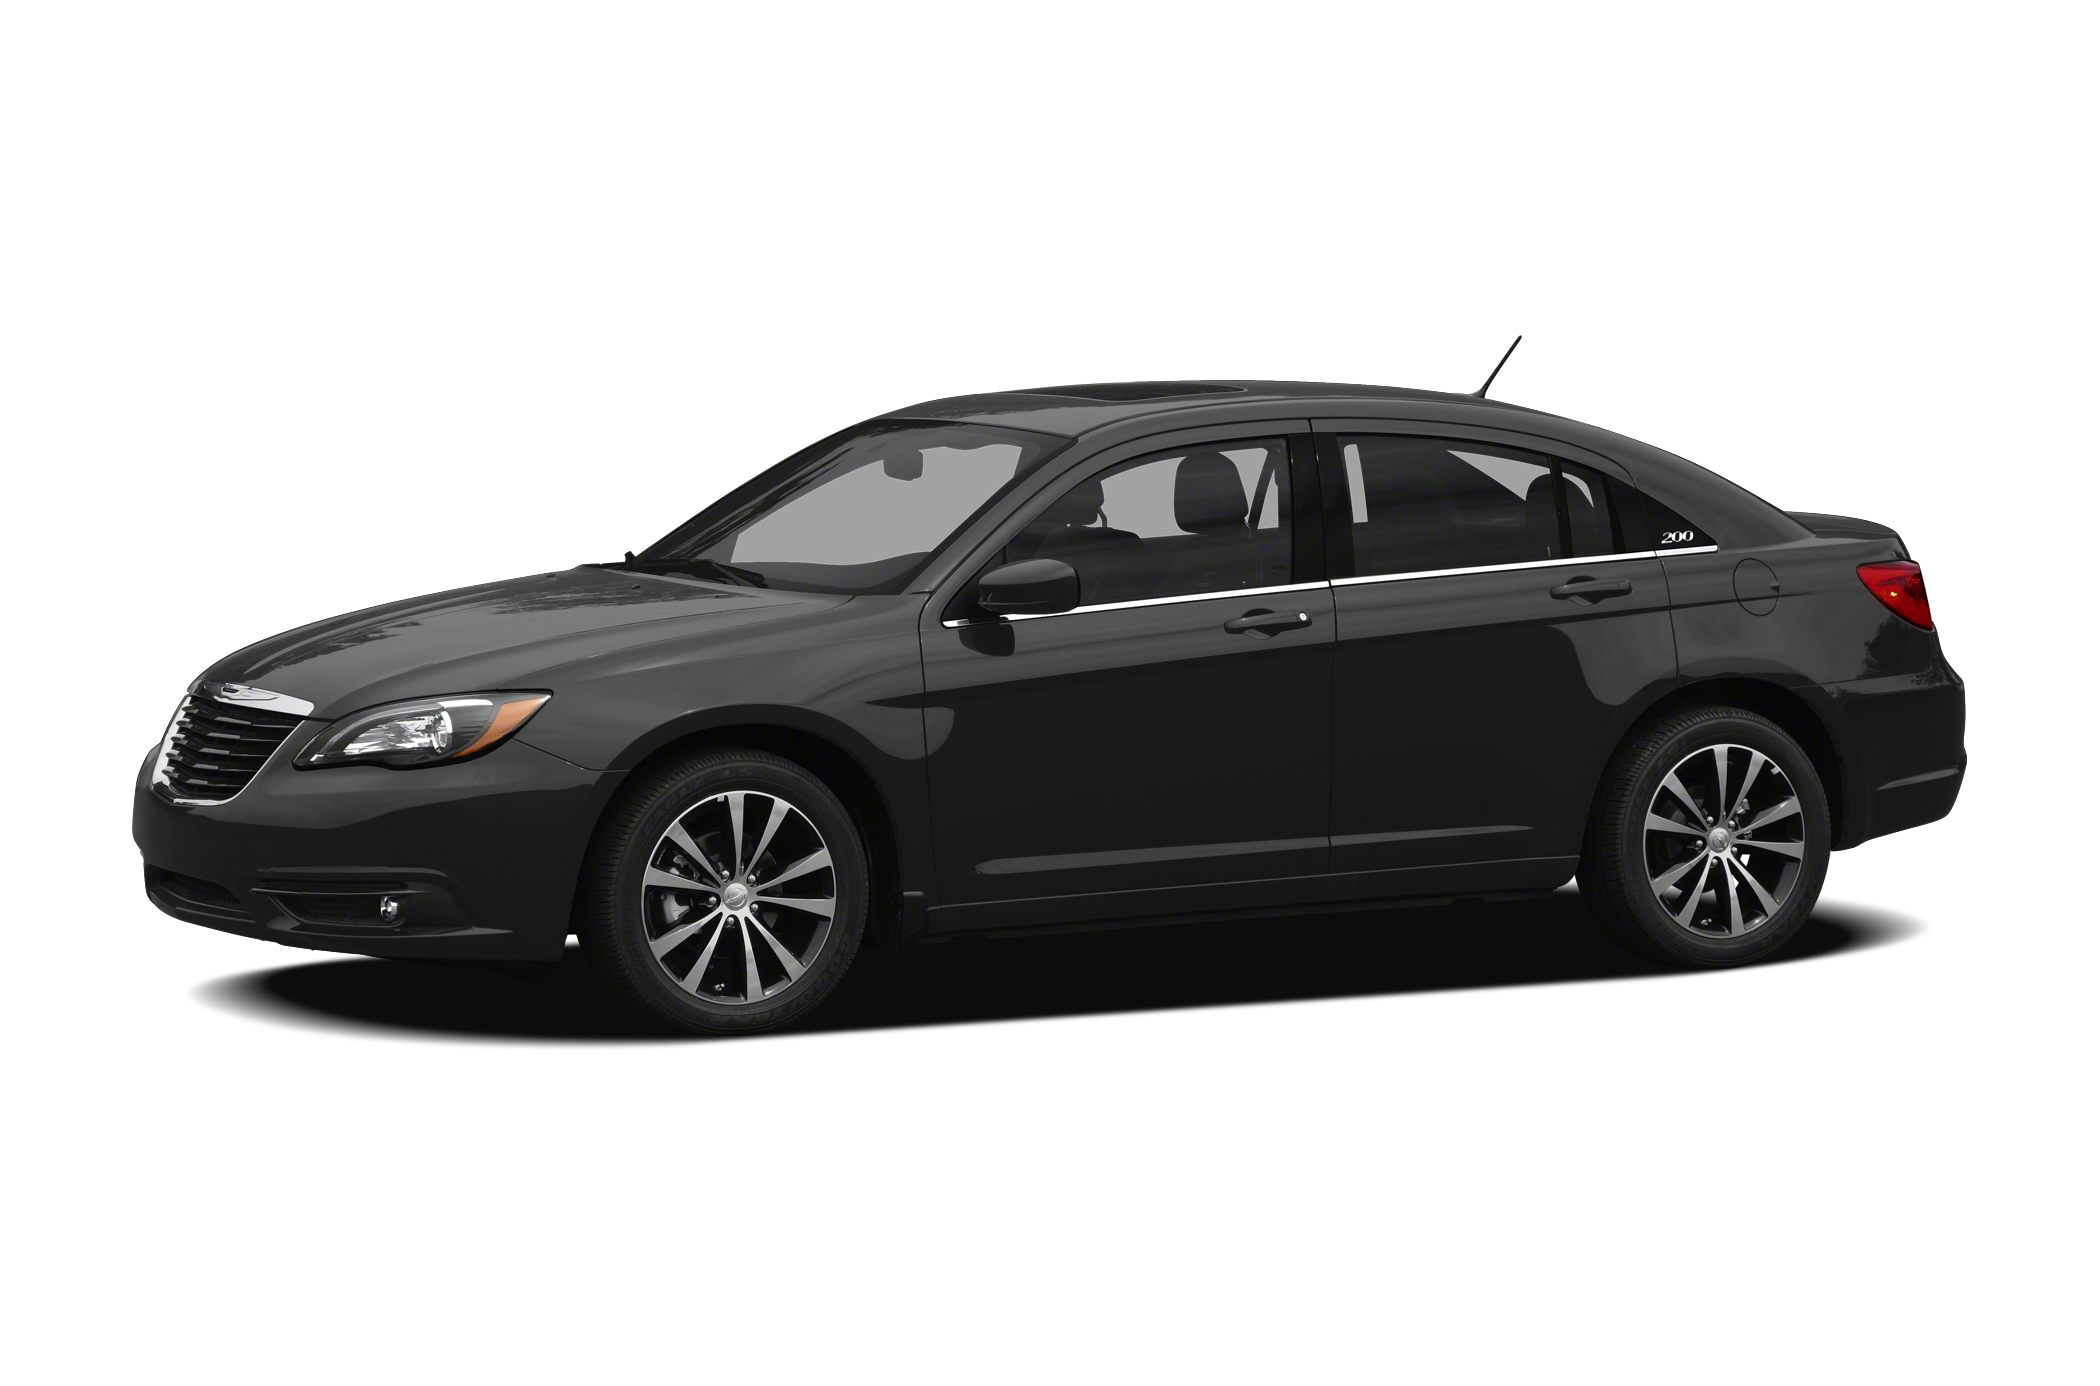 2012 Chrysler 200 S DISCLAIMER We are excited to offer this vehicle to you but it is currently in